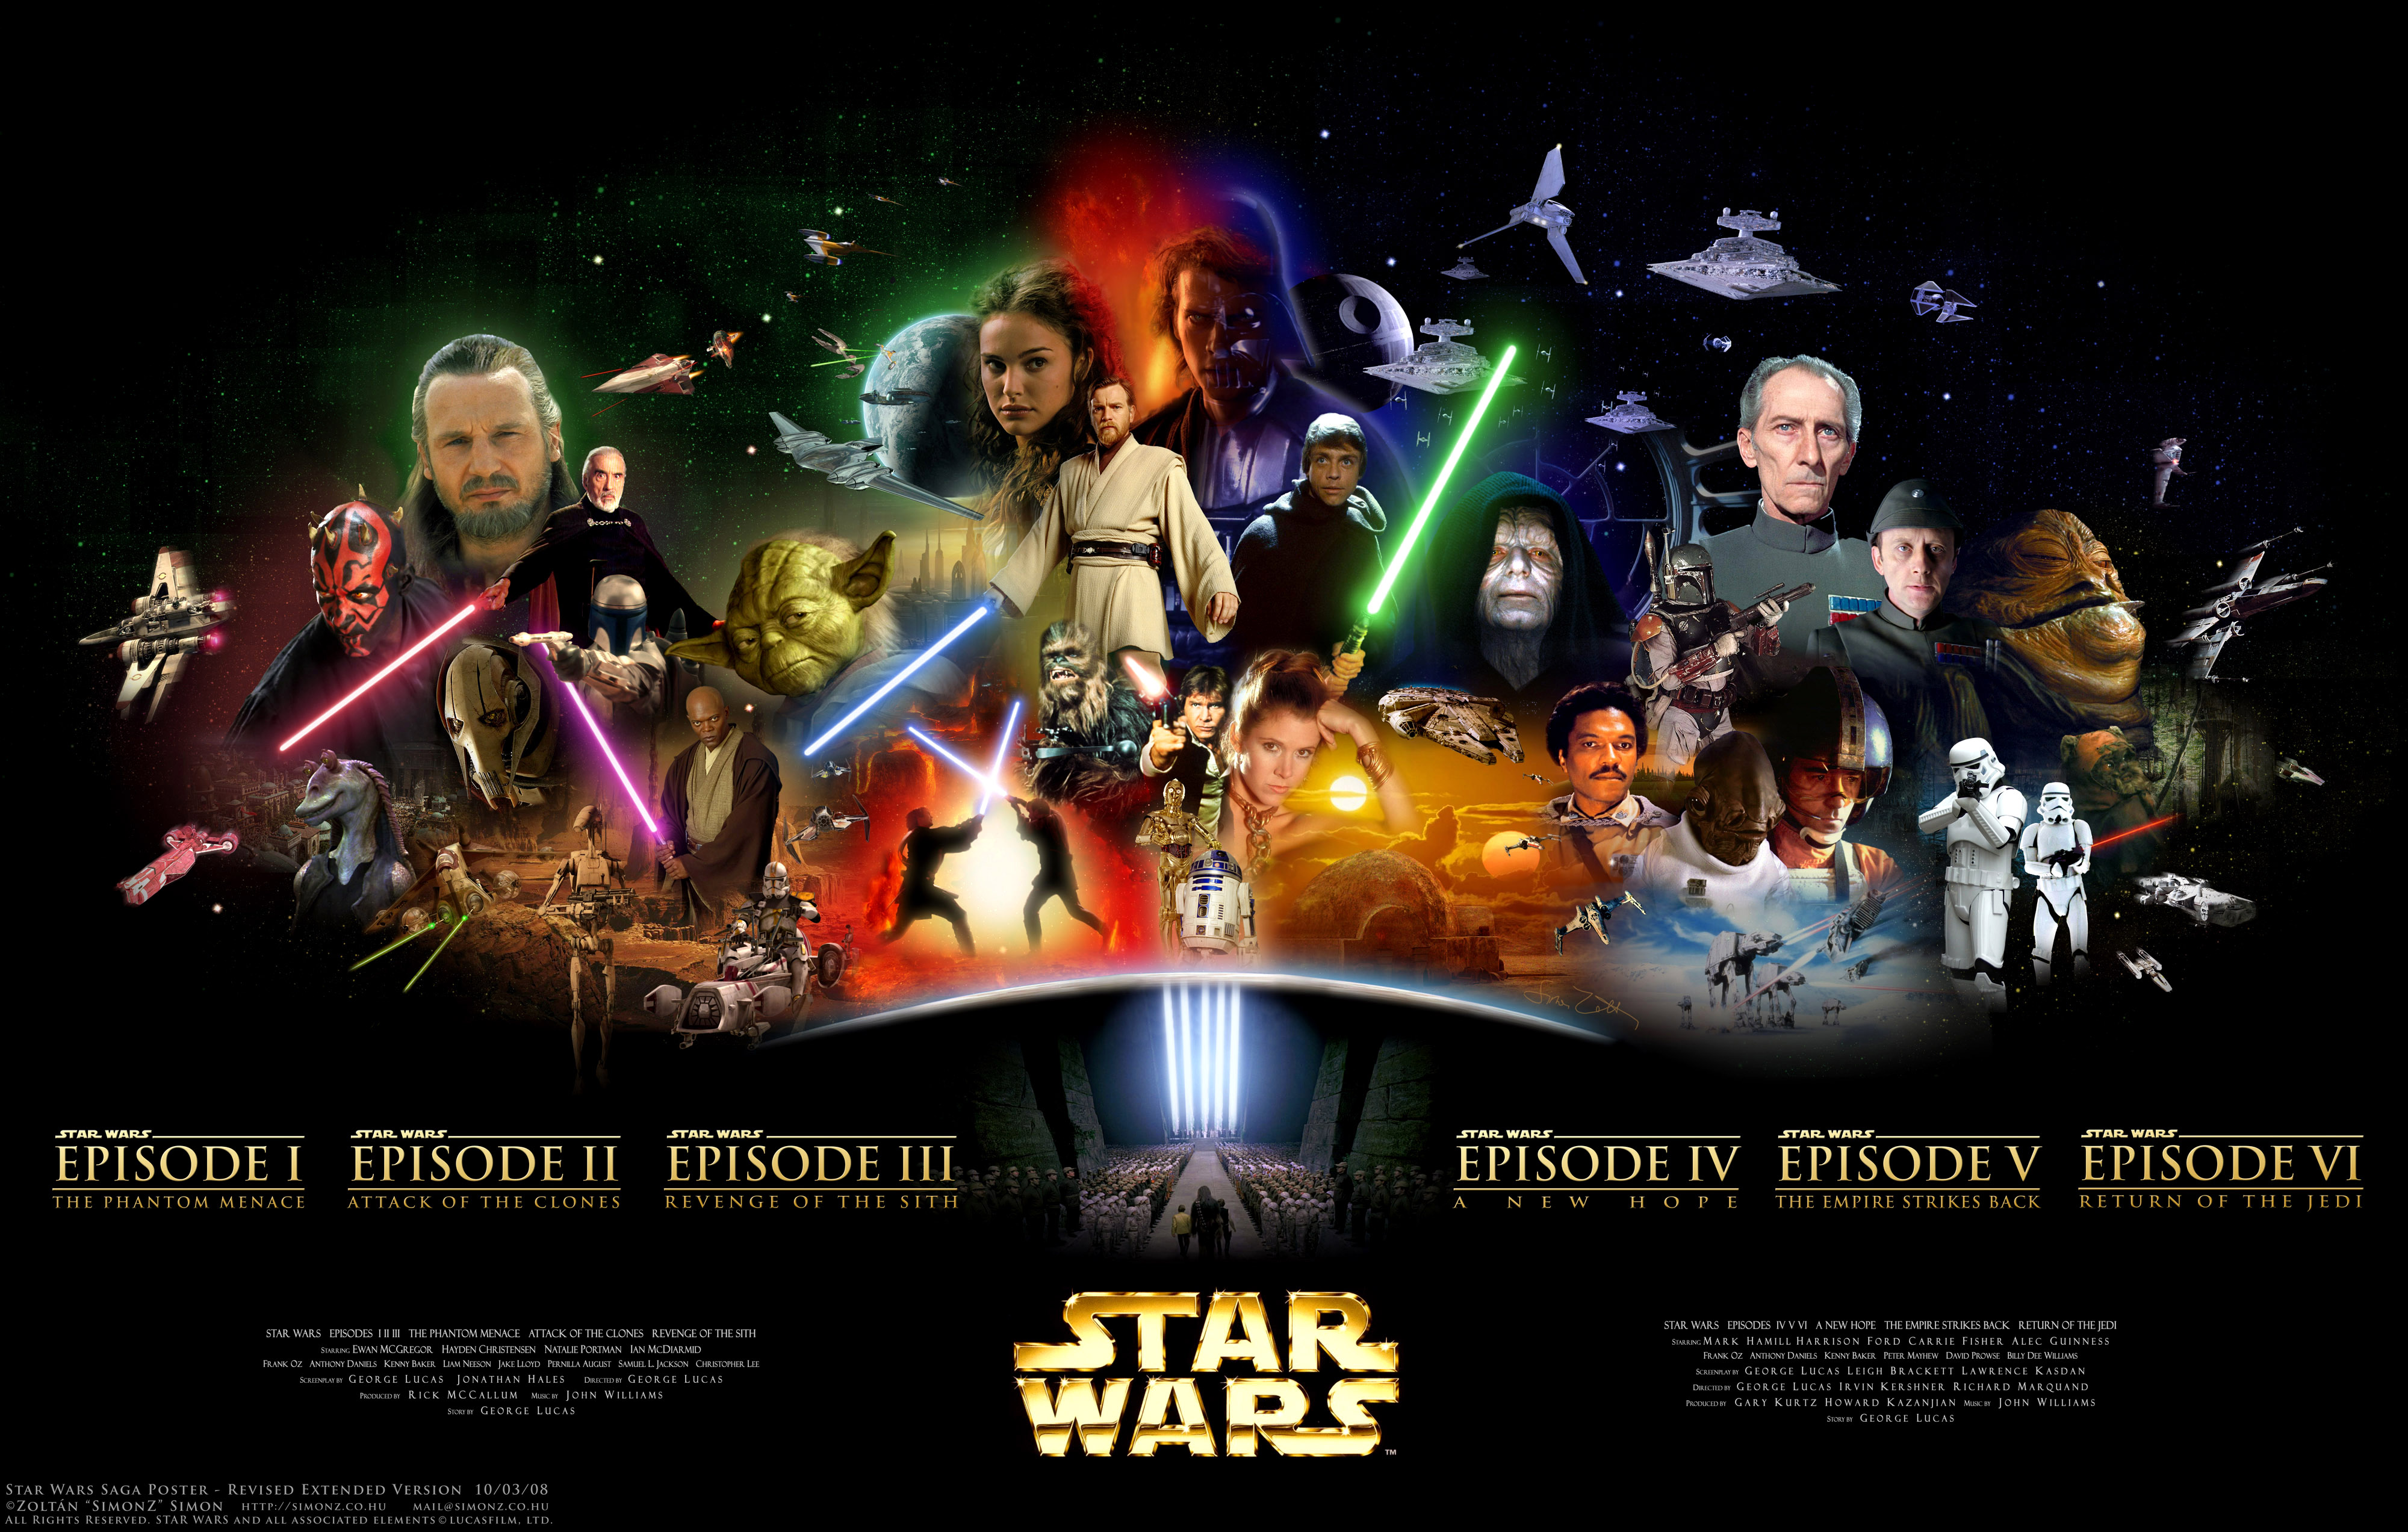 Star Wars Poster Simonz 39s Home Page Star Wars Wallpapers Posters Cover